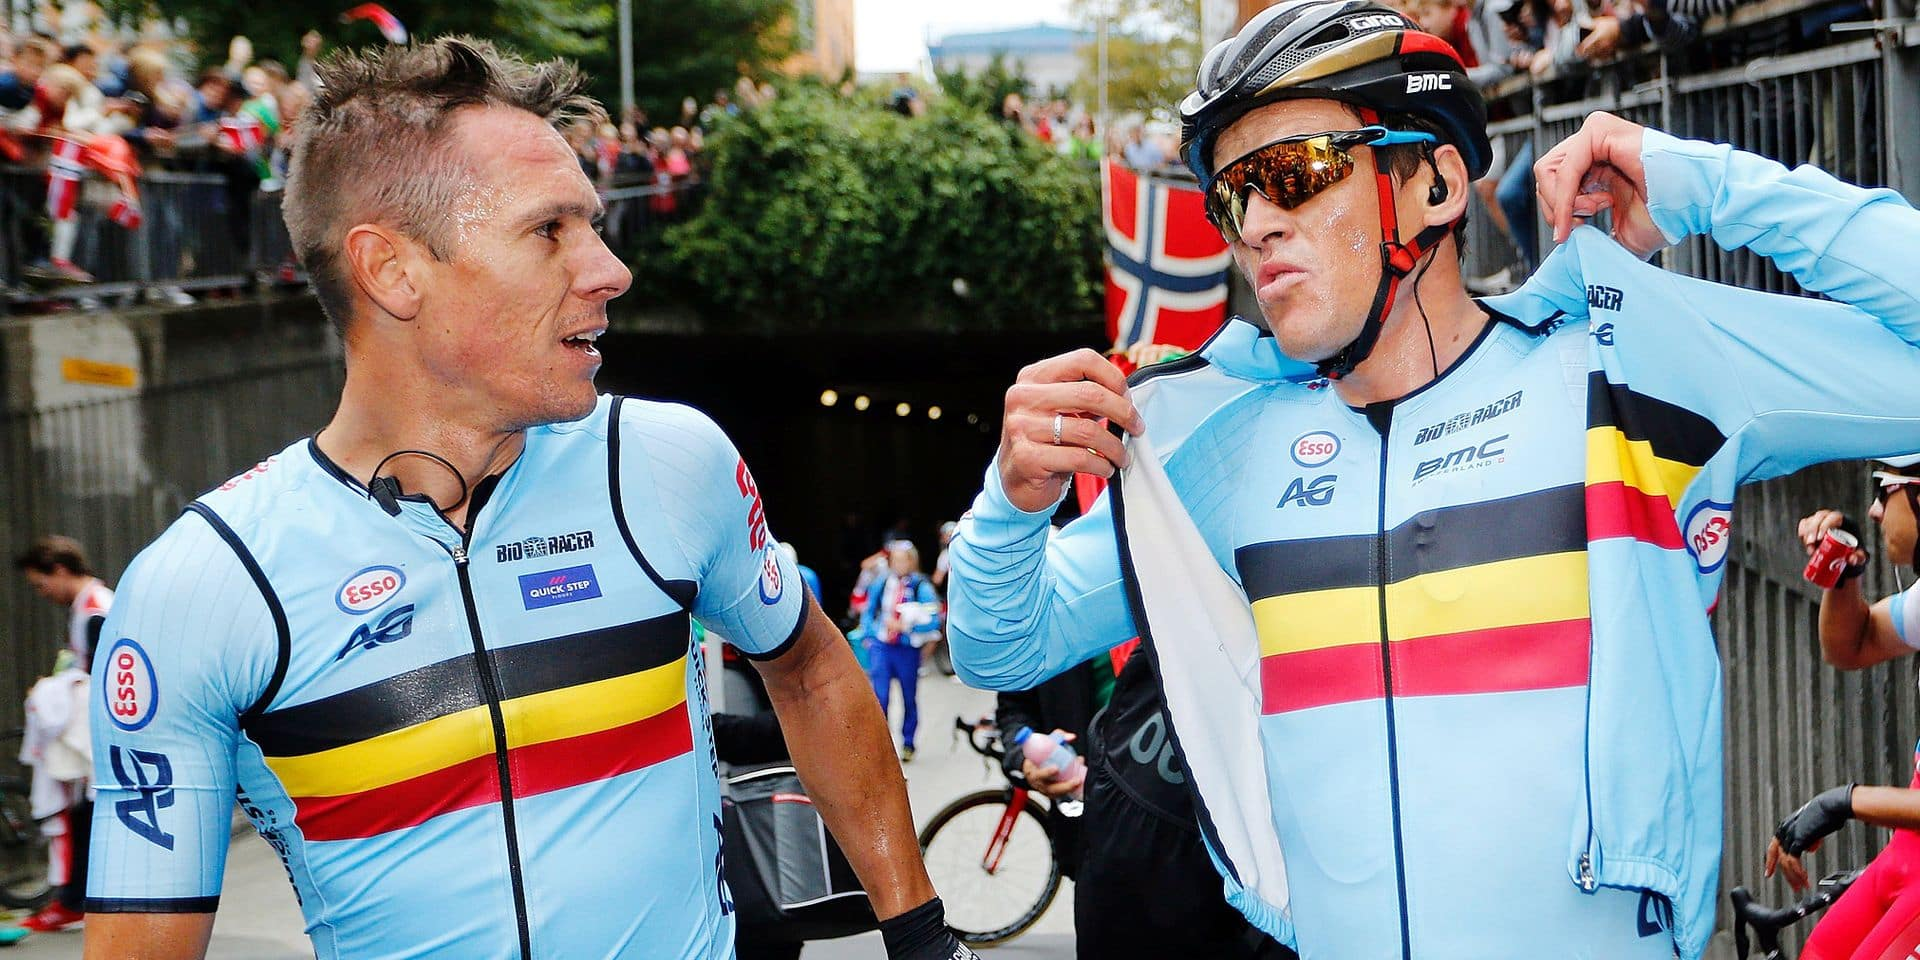 Belgian GILBERT Philippe of Quickstep Floors and belgian VAN AVERMAET Greg of BMC pictured at the men's elite road race at the 2017 UCI Road World Cycling Championships in Bergen, Norway, Sunday 24 September 2017. BELGA PHOTO YUZURU SUNADA FRANCE OUT